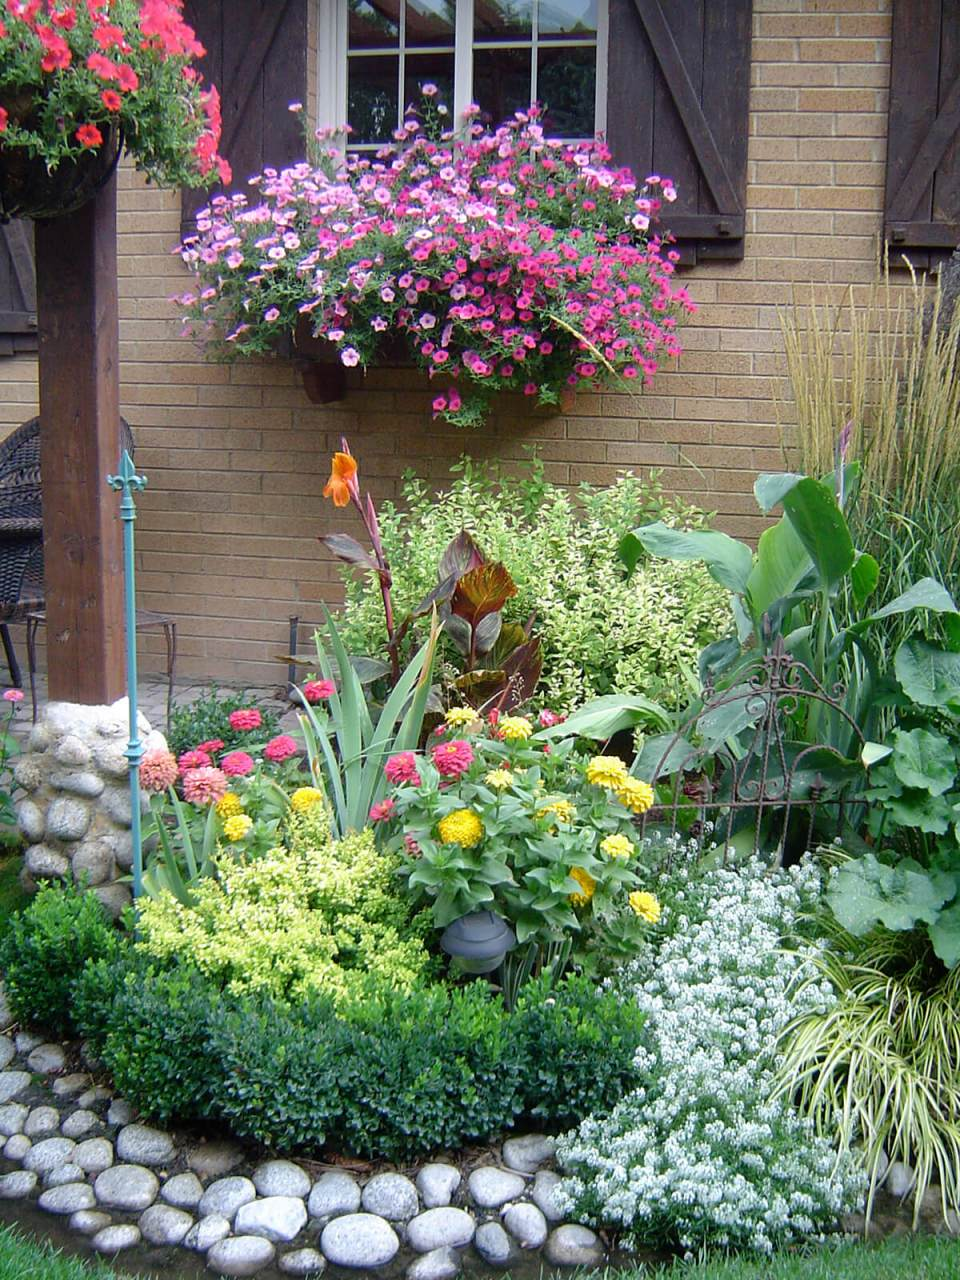 31 Gorgeous Flower Bed Ideas to Try For Your Garden ... on Flower Bed Ideas Backyard id=89400